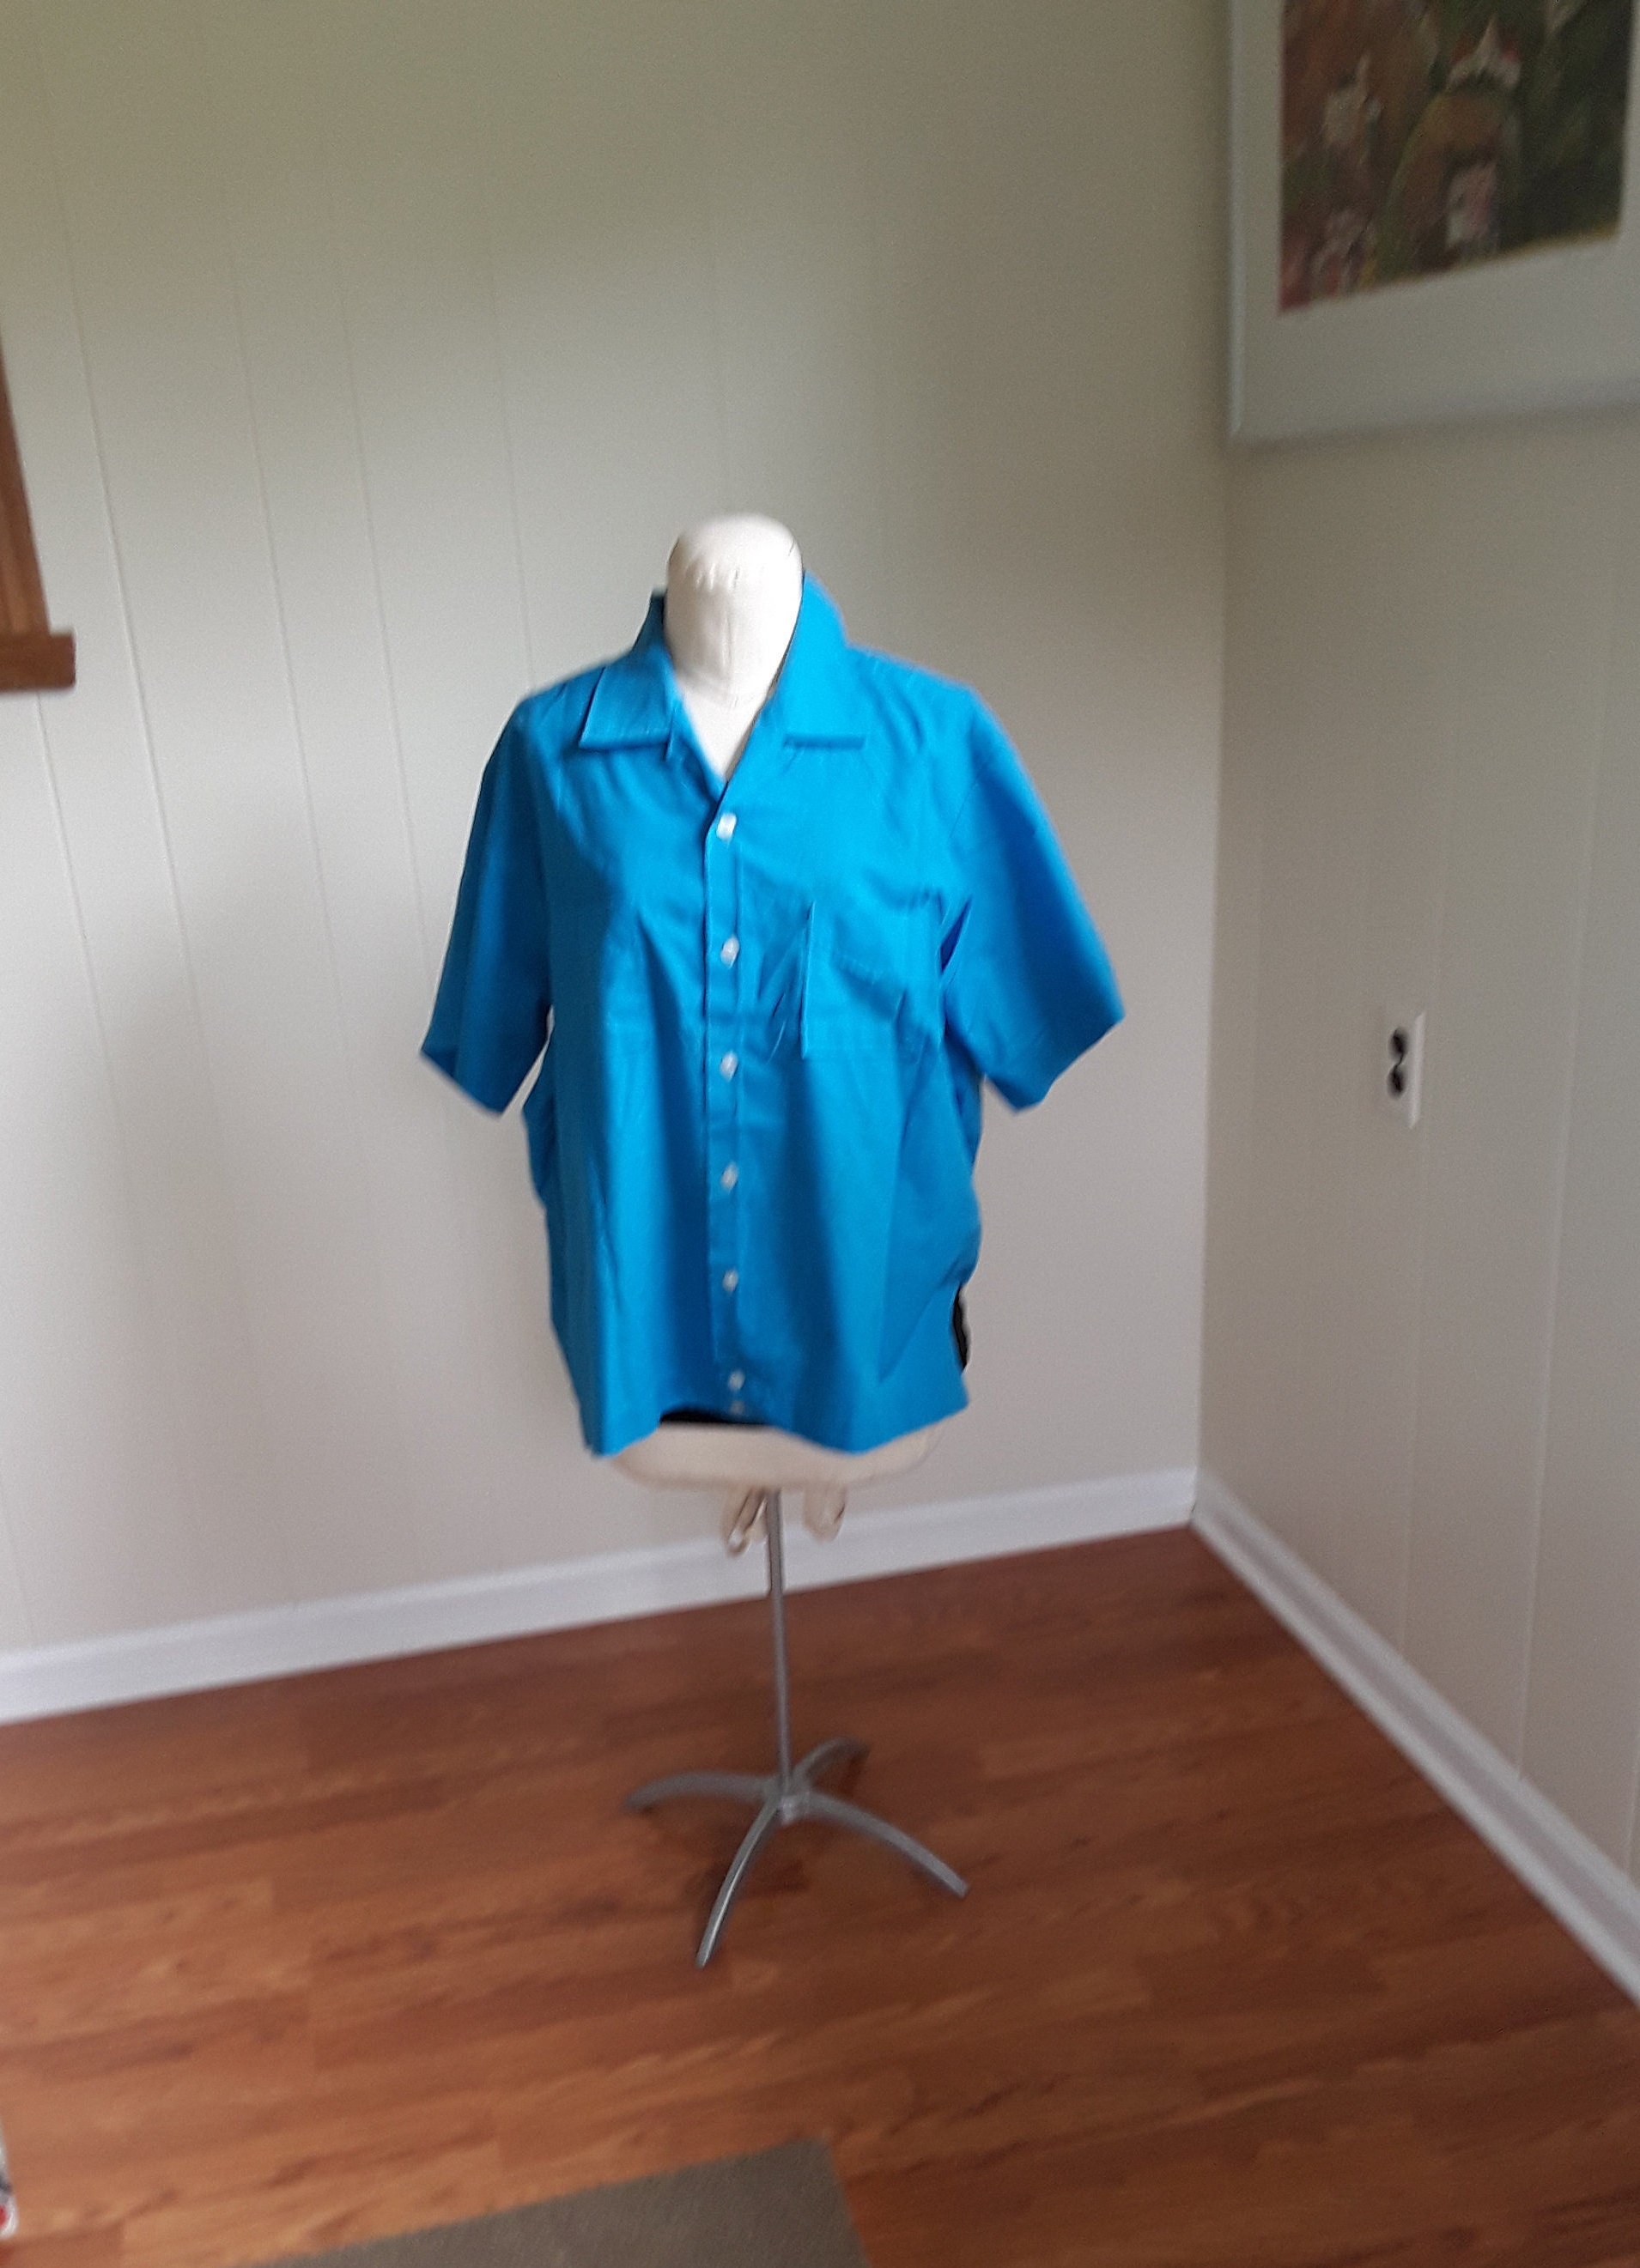 1970s Mens Shirt Styles – Vintage 70s Shirts for Guys Vintage Michigan Lottery Promotional Shirt, Imperial Mens Bowling Gas Station Uniform Shirt Size Xl $0.00 AT vintagedancer.com